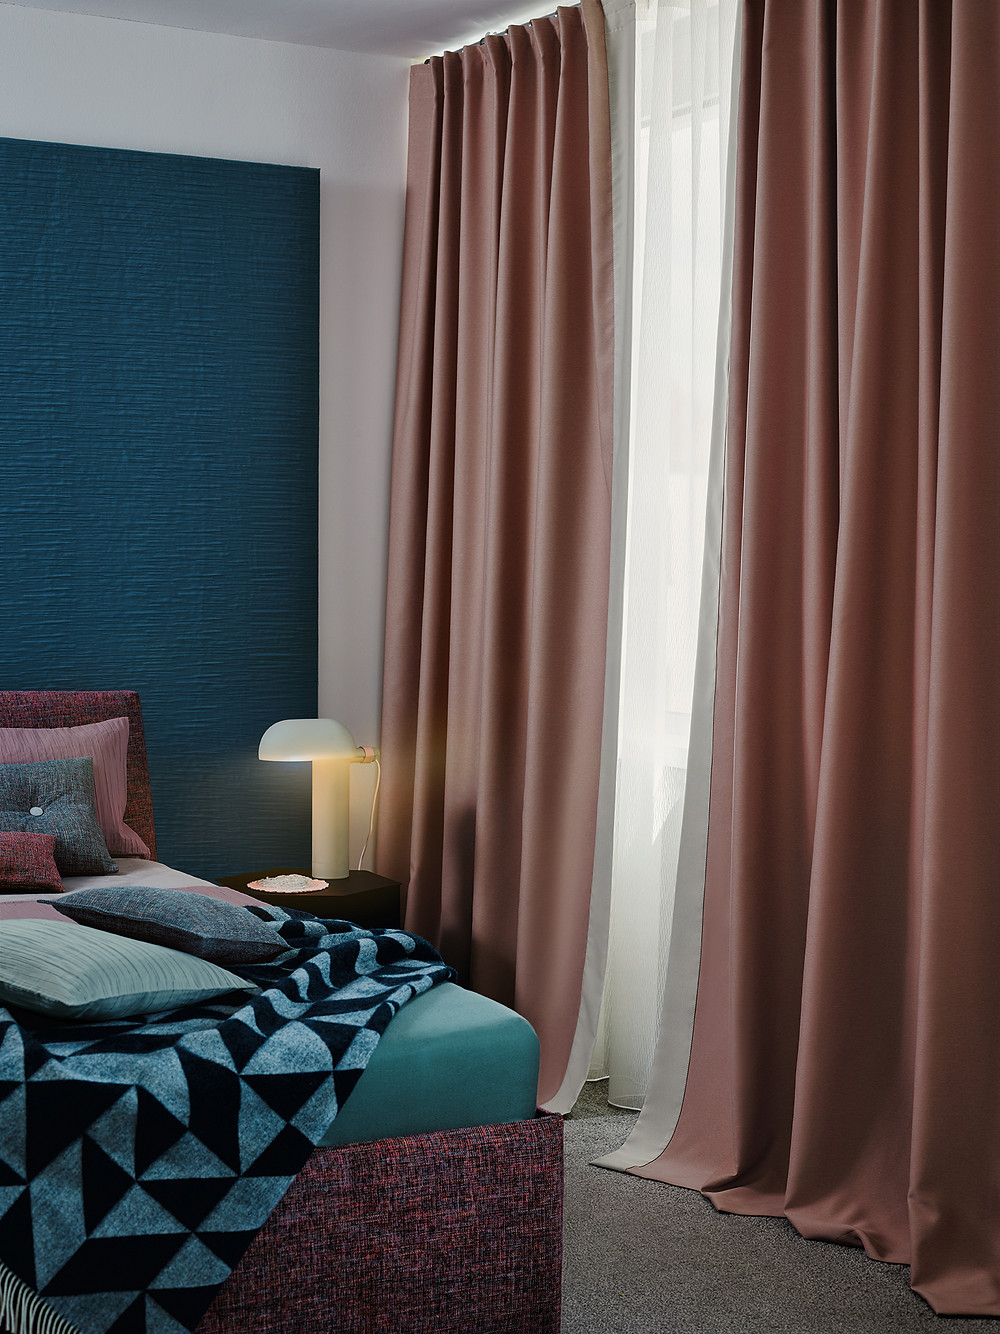 Custom-made curtains in Hong Kong, Dimout curtain fabric